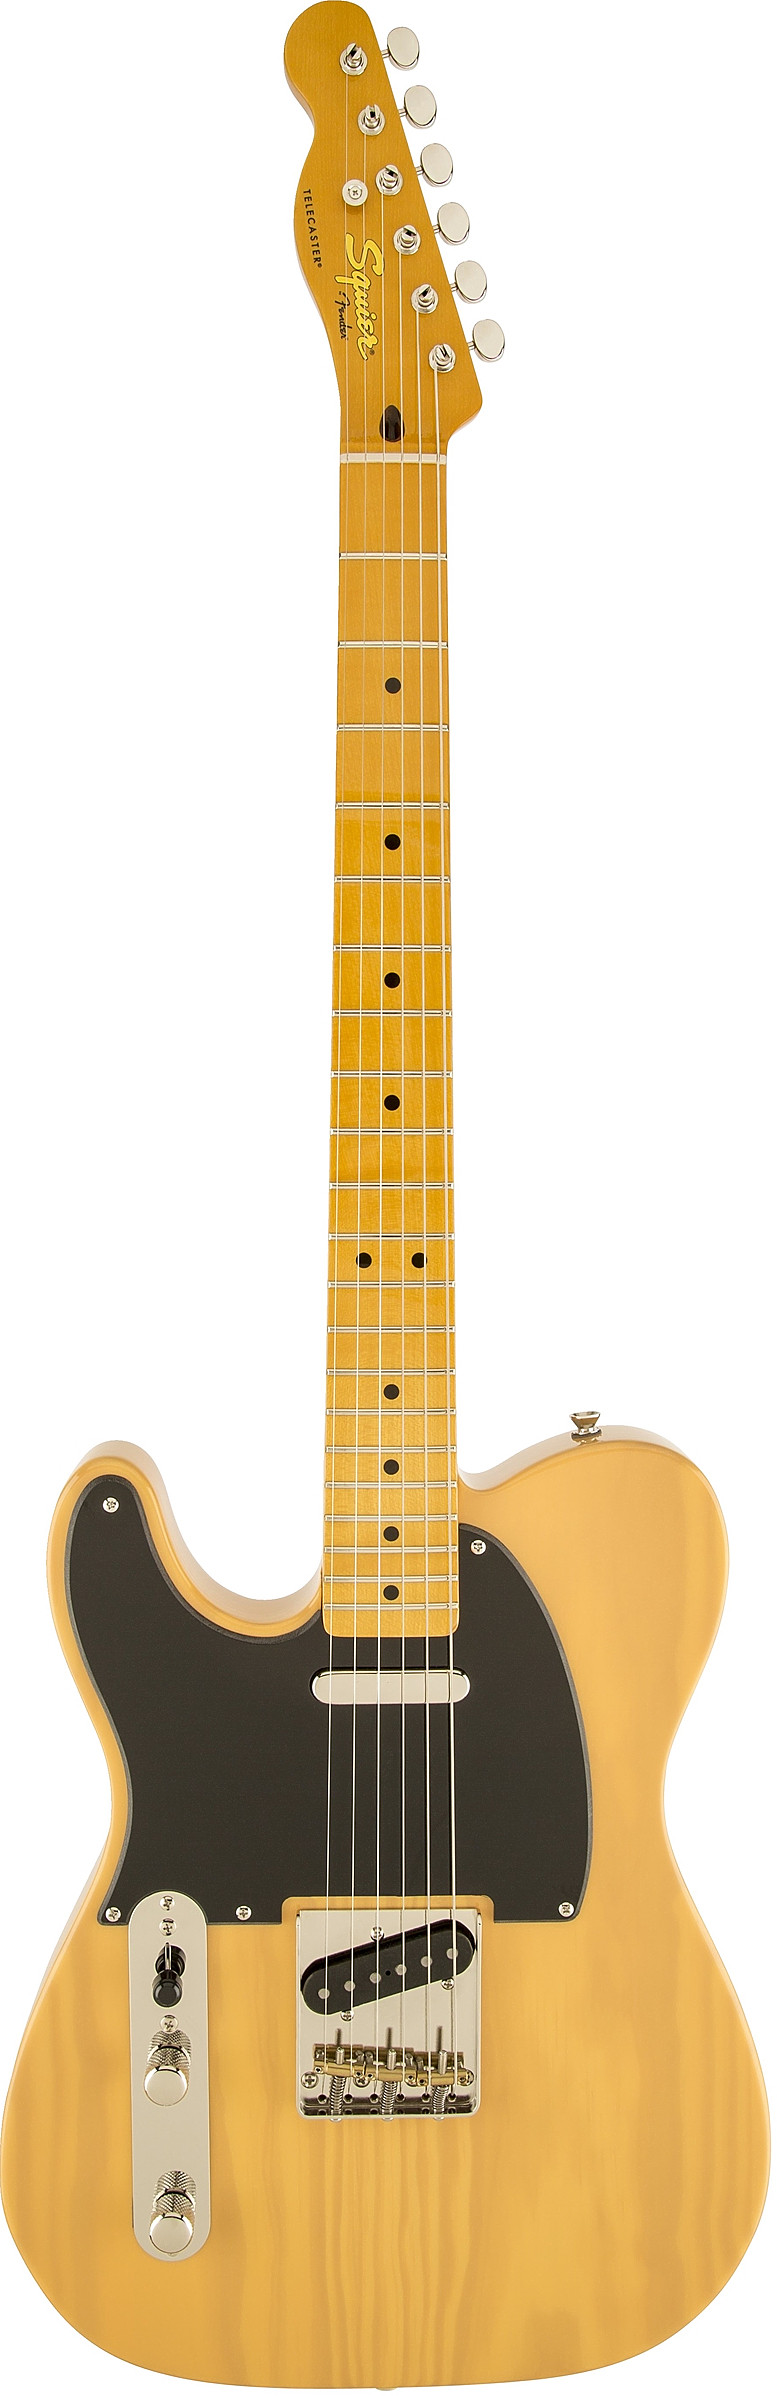 Classic Vibe Telecaster `50s Left-Handed by Squier by Fender